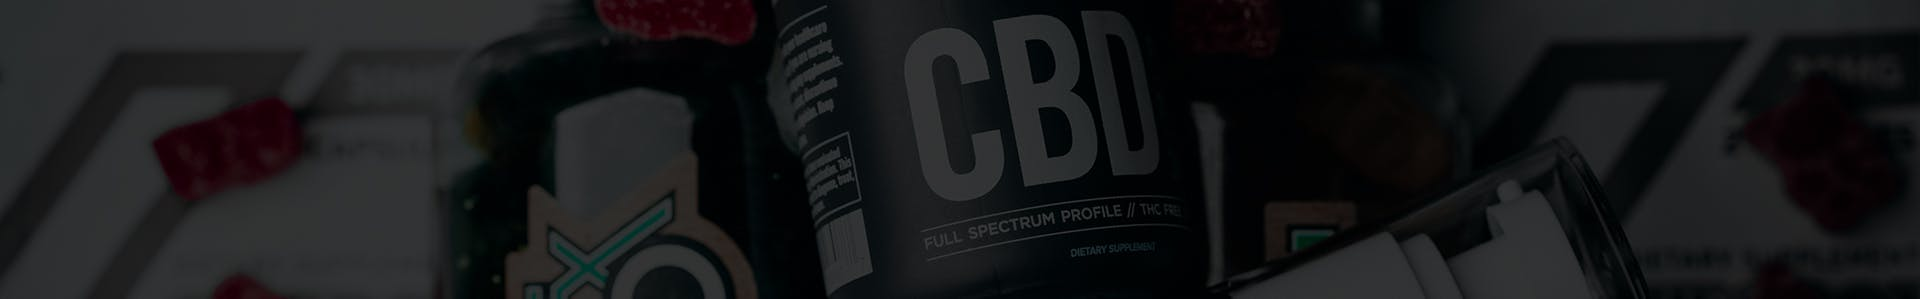 Best CBD Products 2020